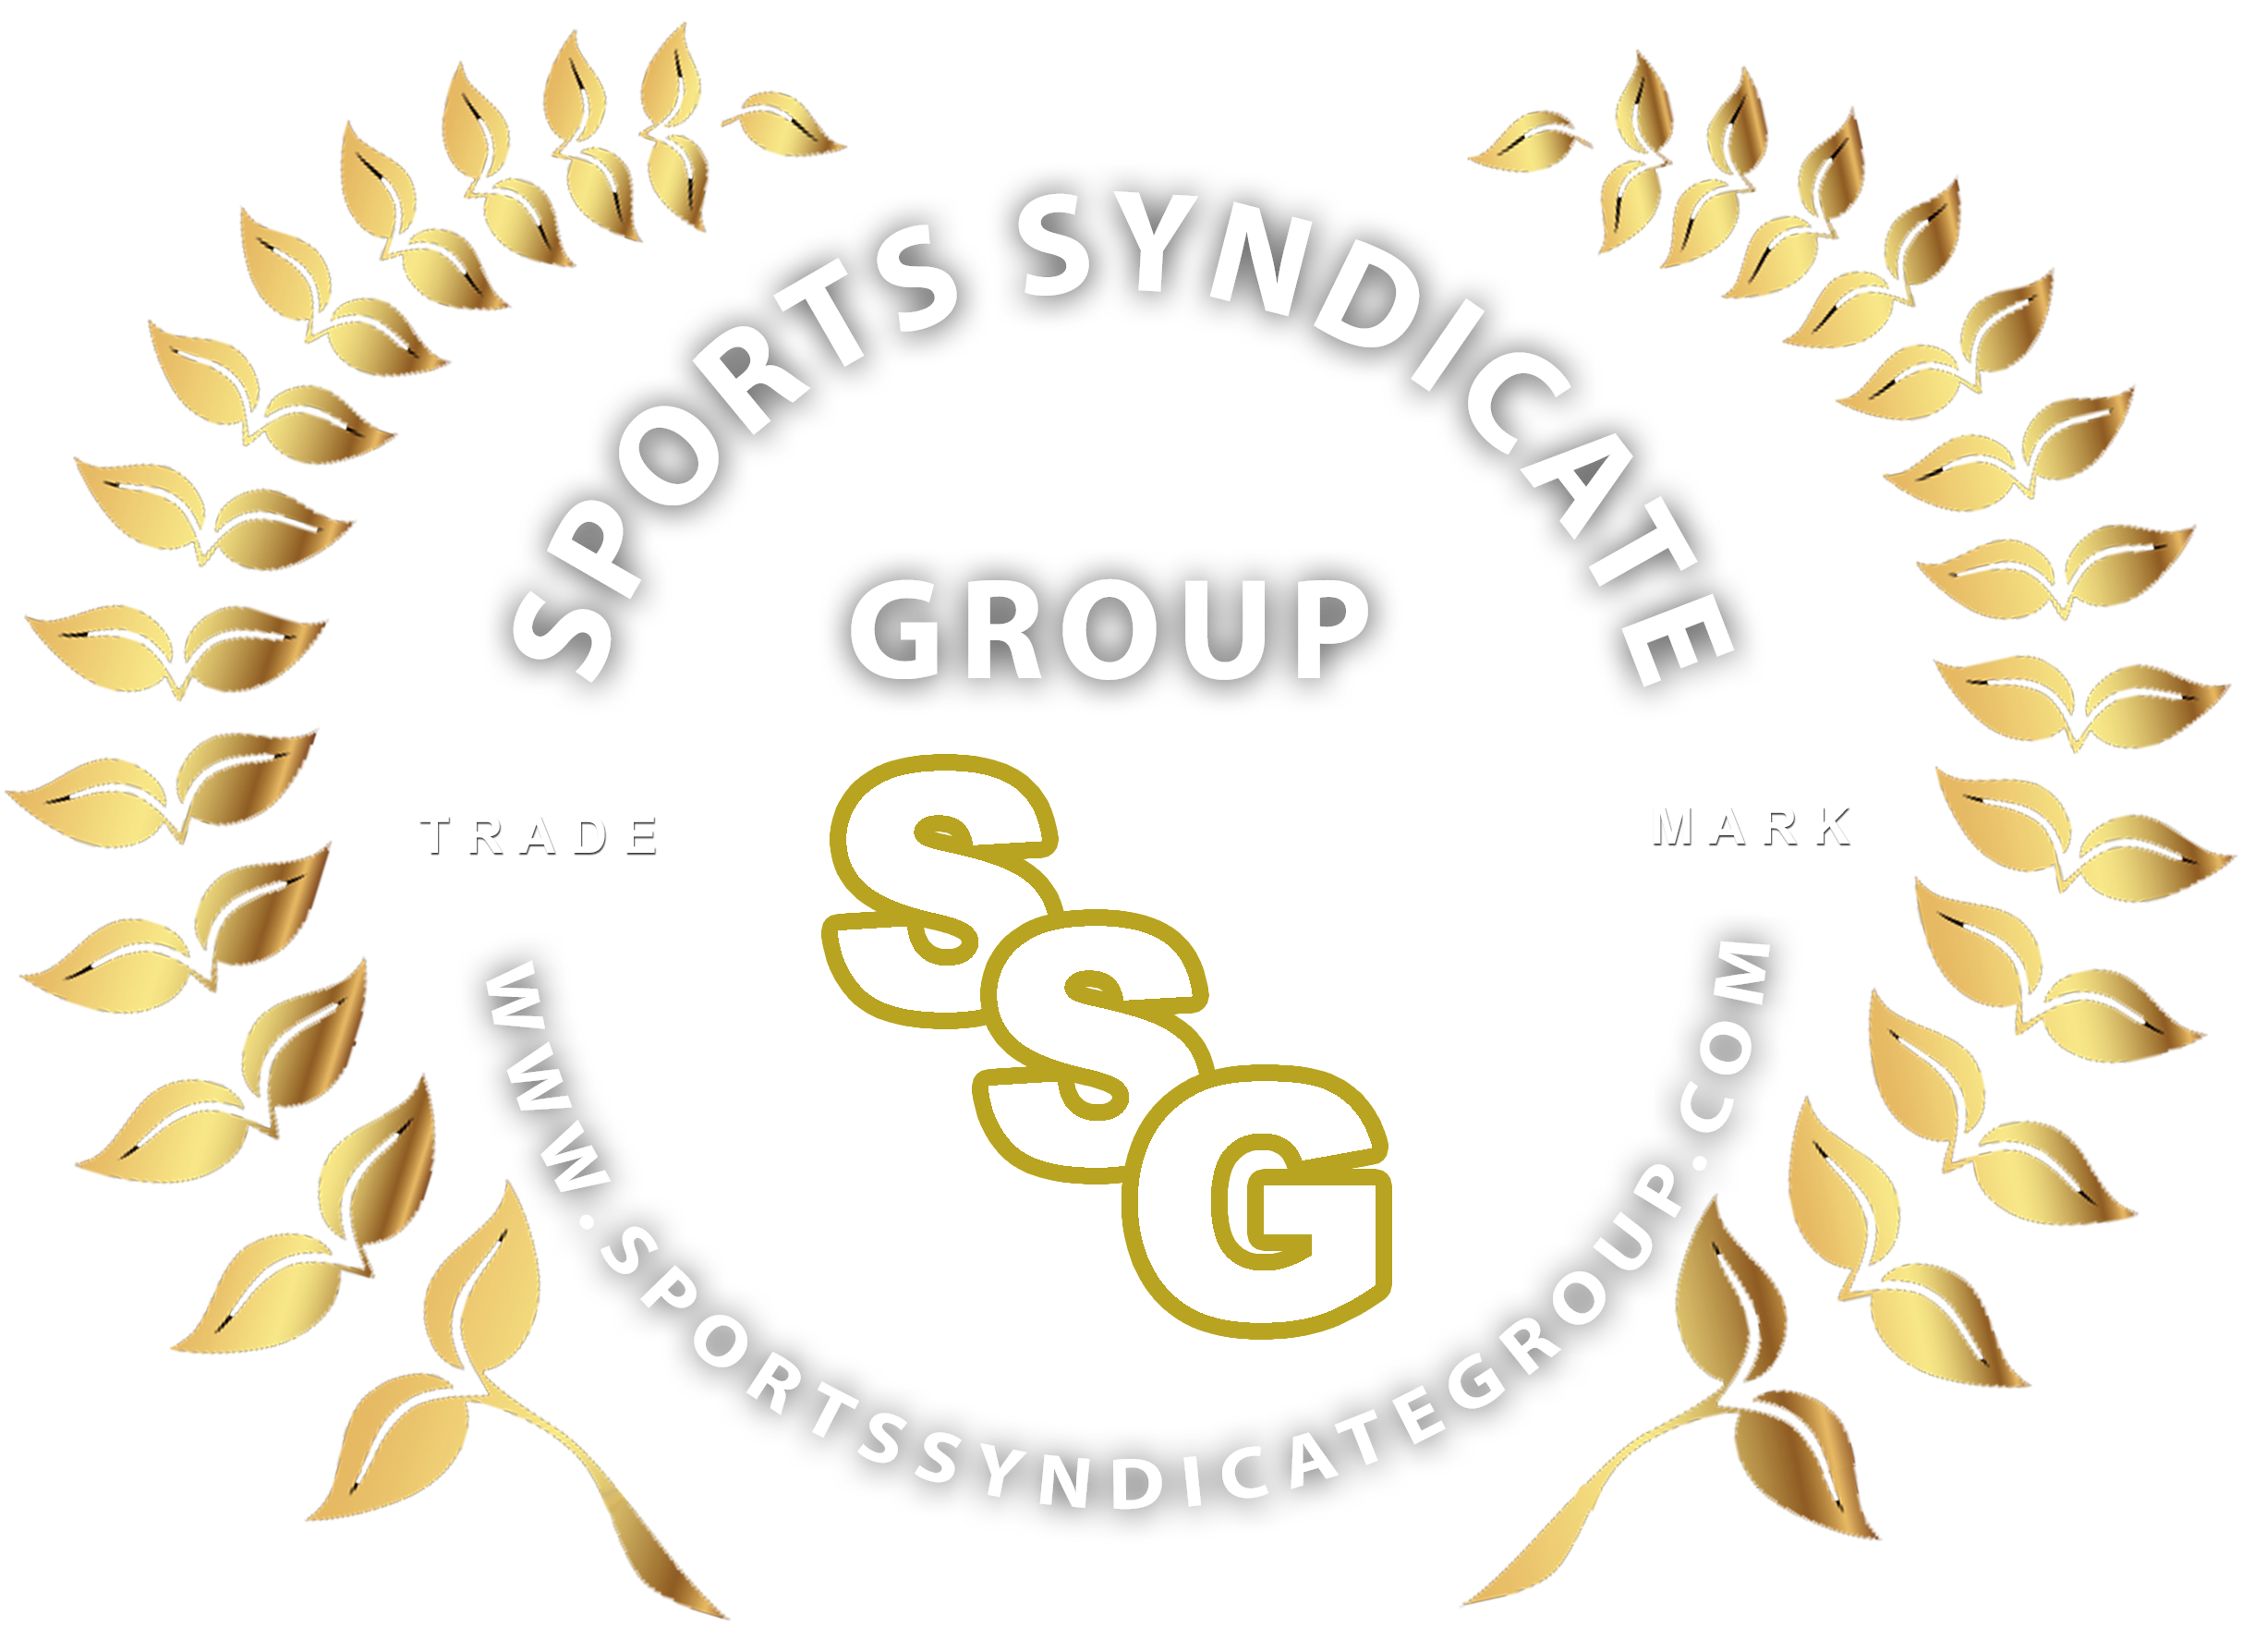 Sports Syndicate Group